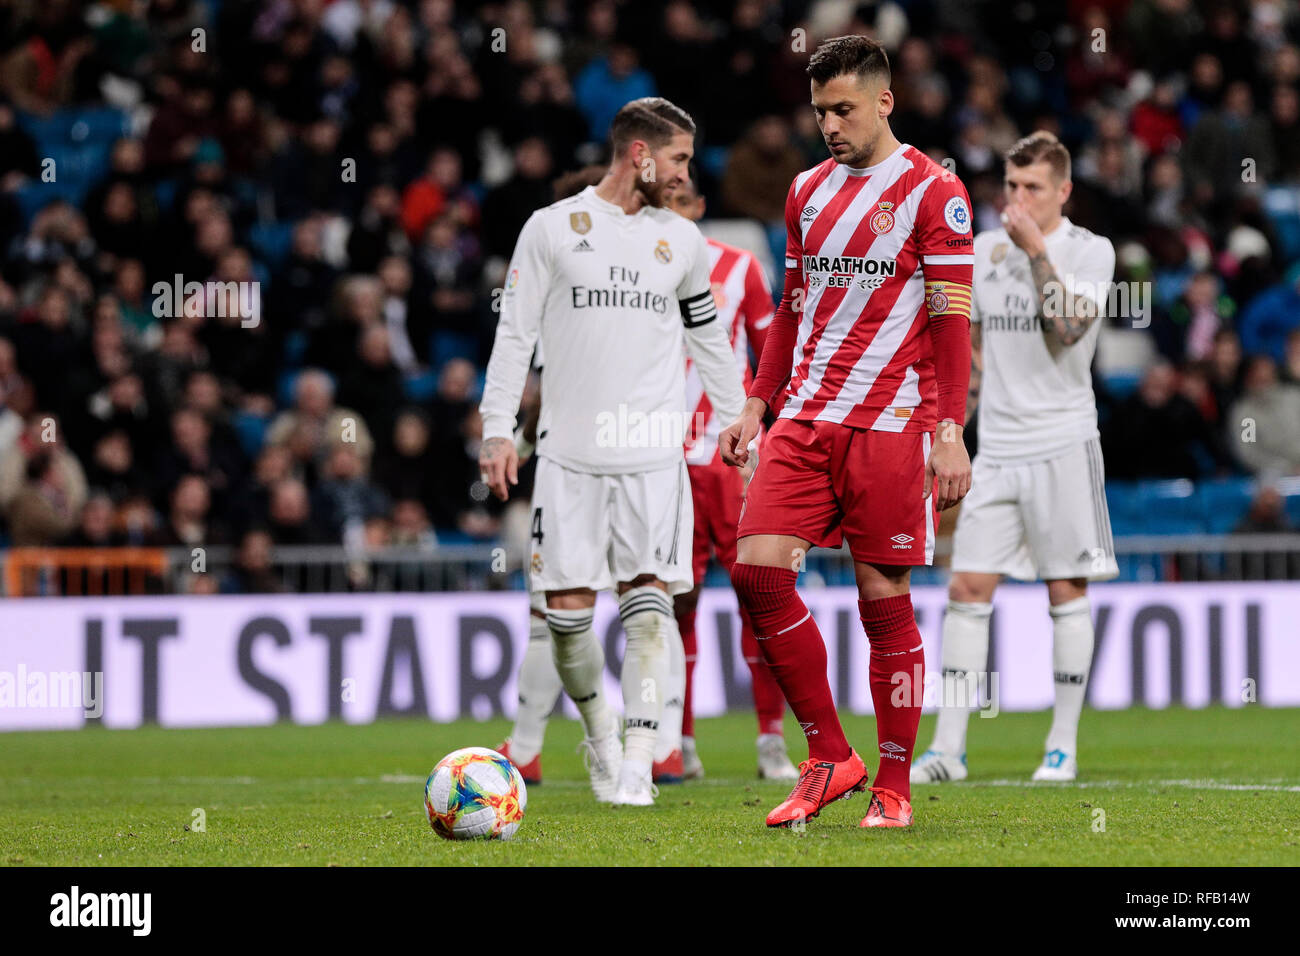 Girona FC's Alex Granell during Copa del Rey match between Real Madrid and Girona FC at Santiago Bernabeu Stadium. (Final score: Real Madrid 4 - Girona FC 2) - Stock Image